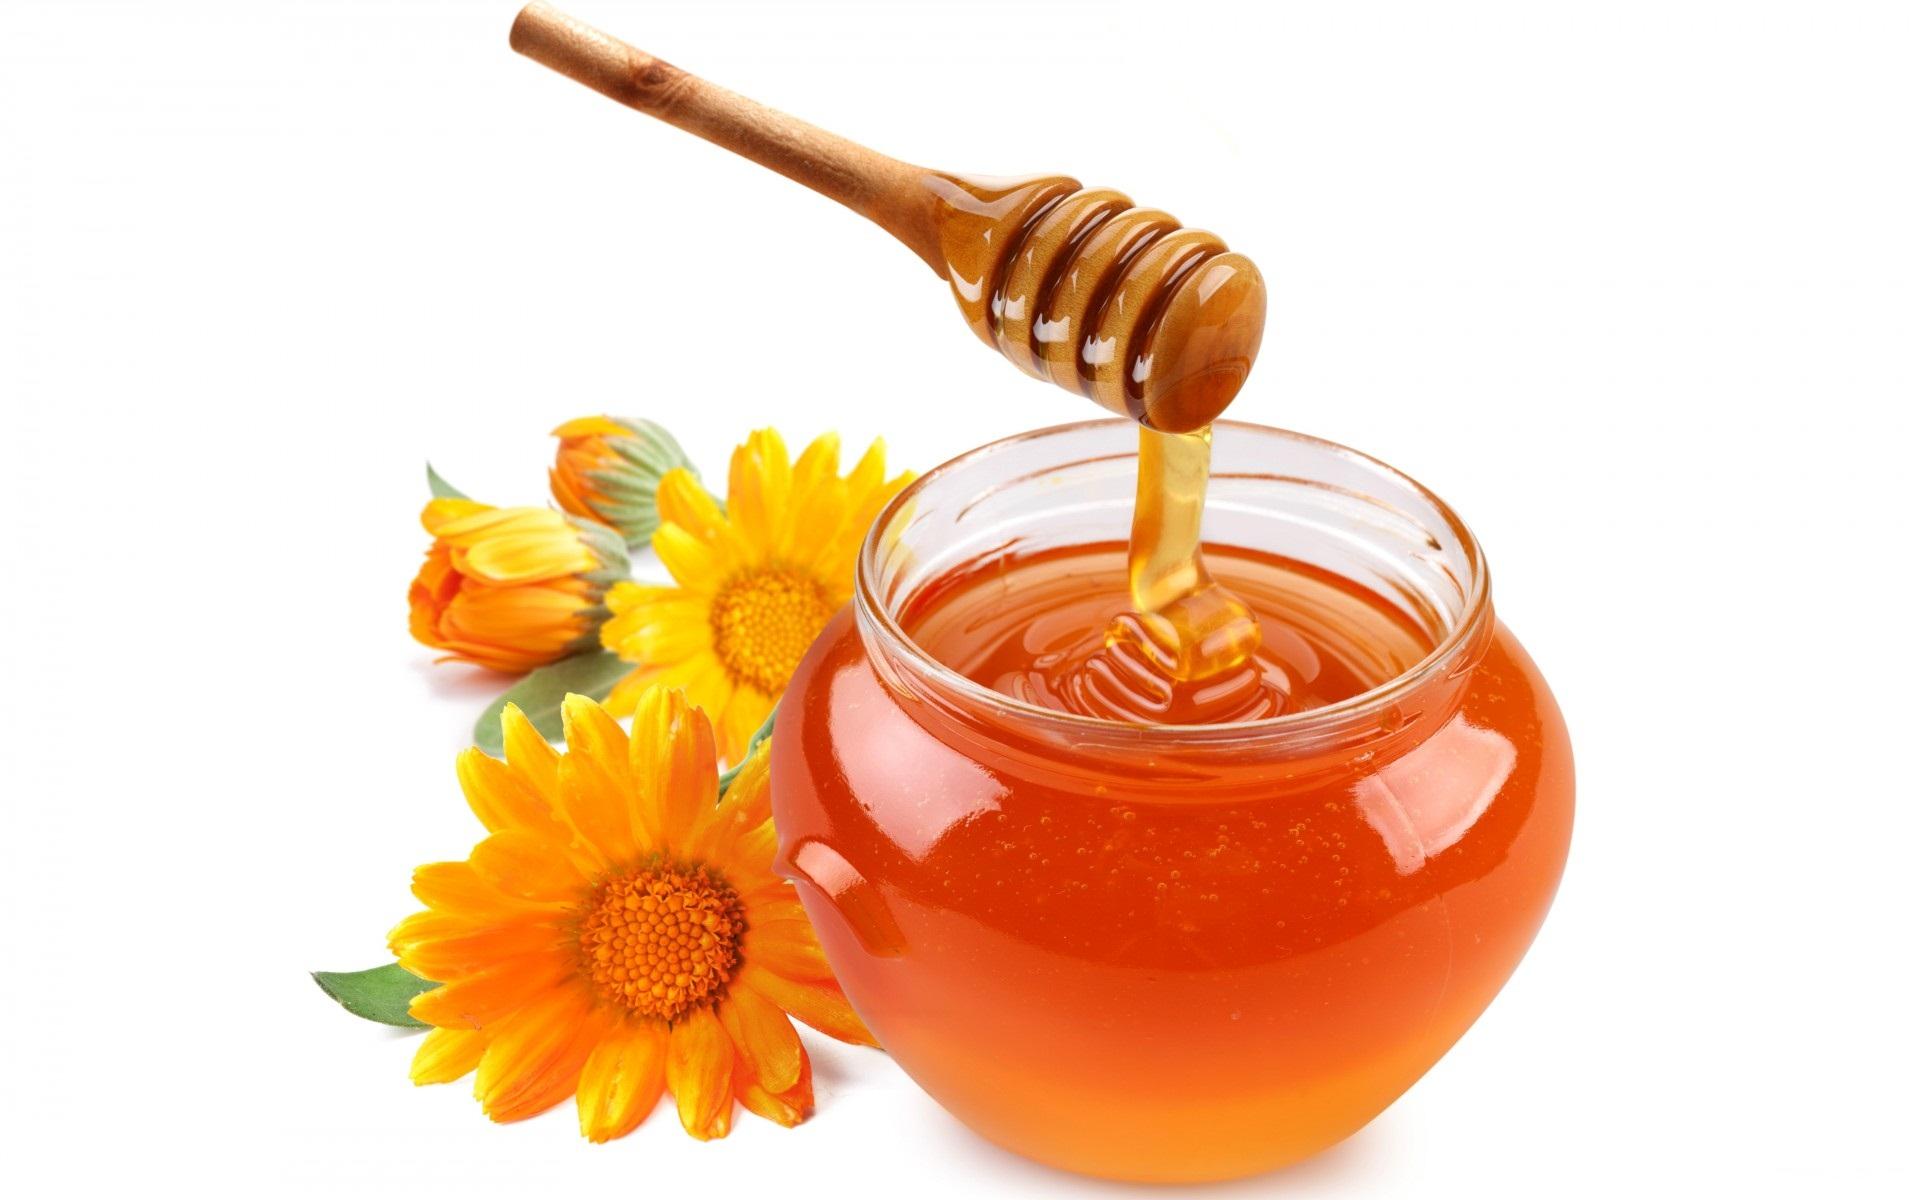 Holistic Pain Remedies Honey Holistic Pain Remedies   Let Food Be Thy Medicine